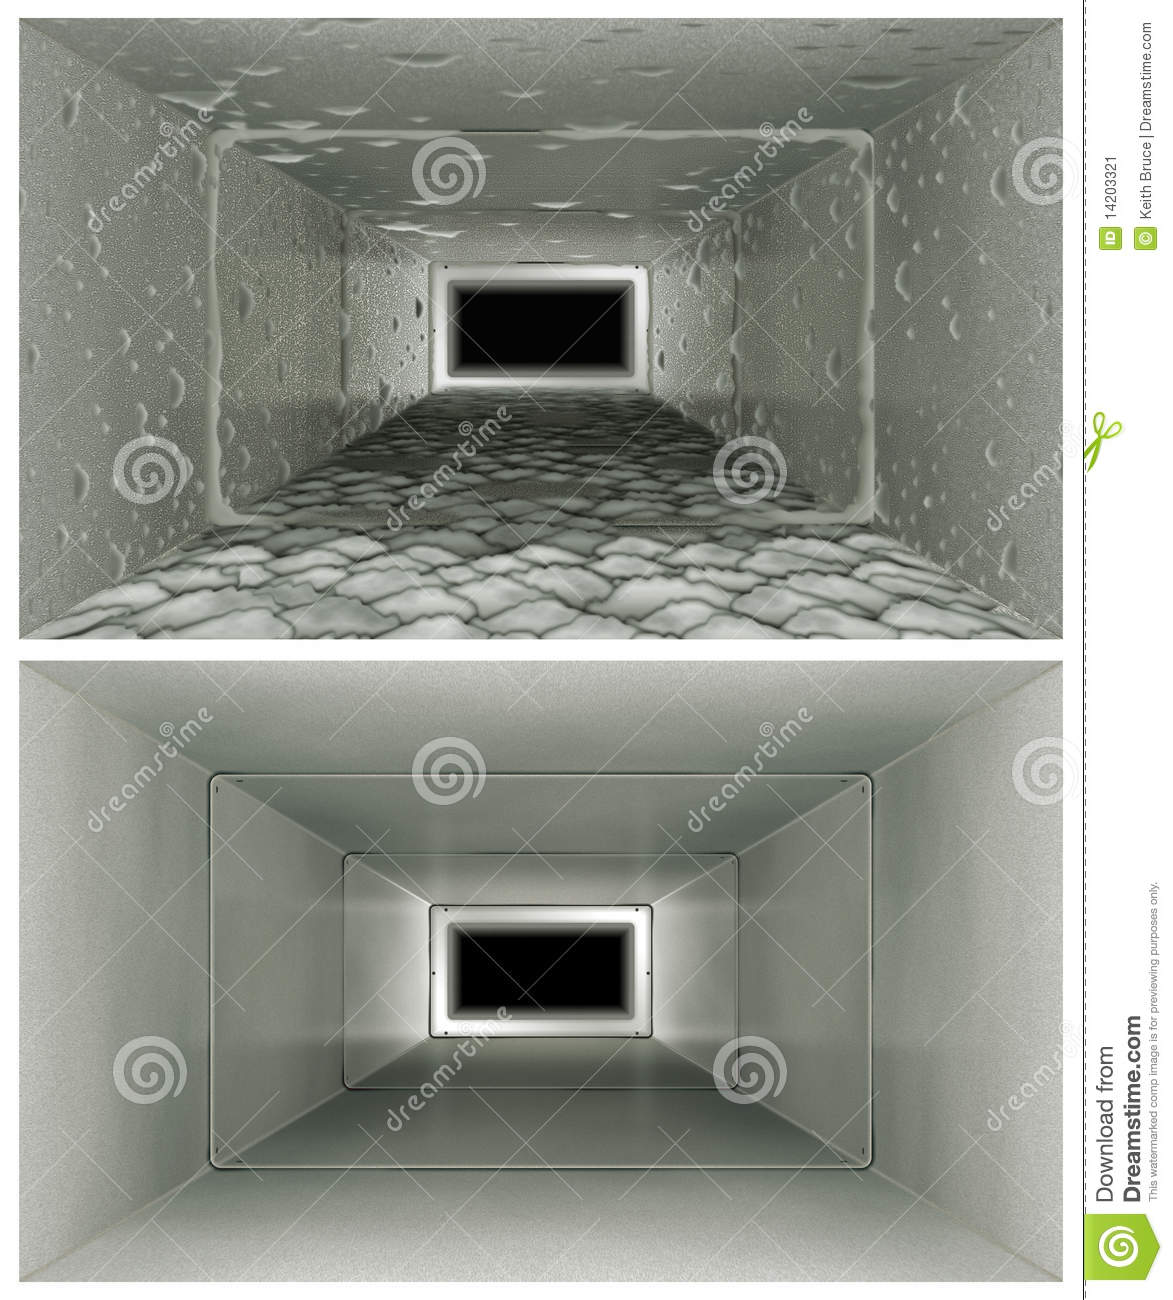 Air Duct Cleaning Before Amp After Stock Image Image 14203321